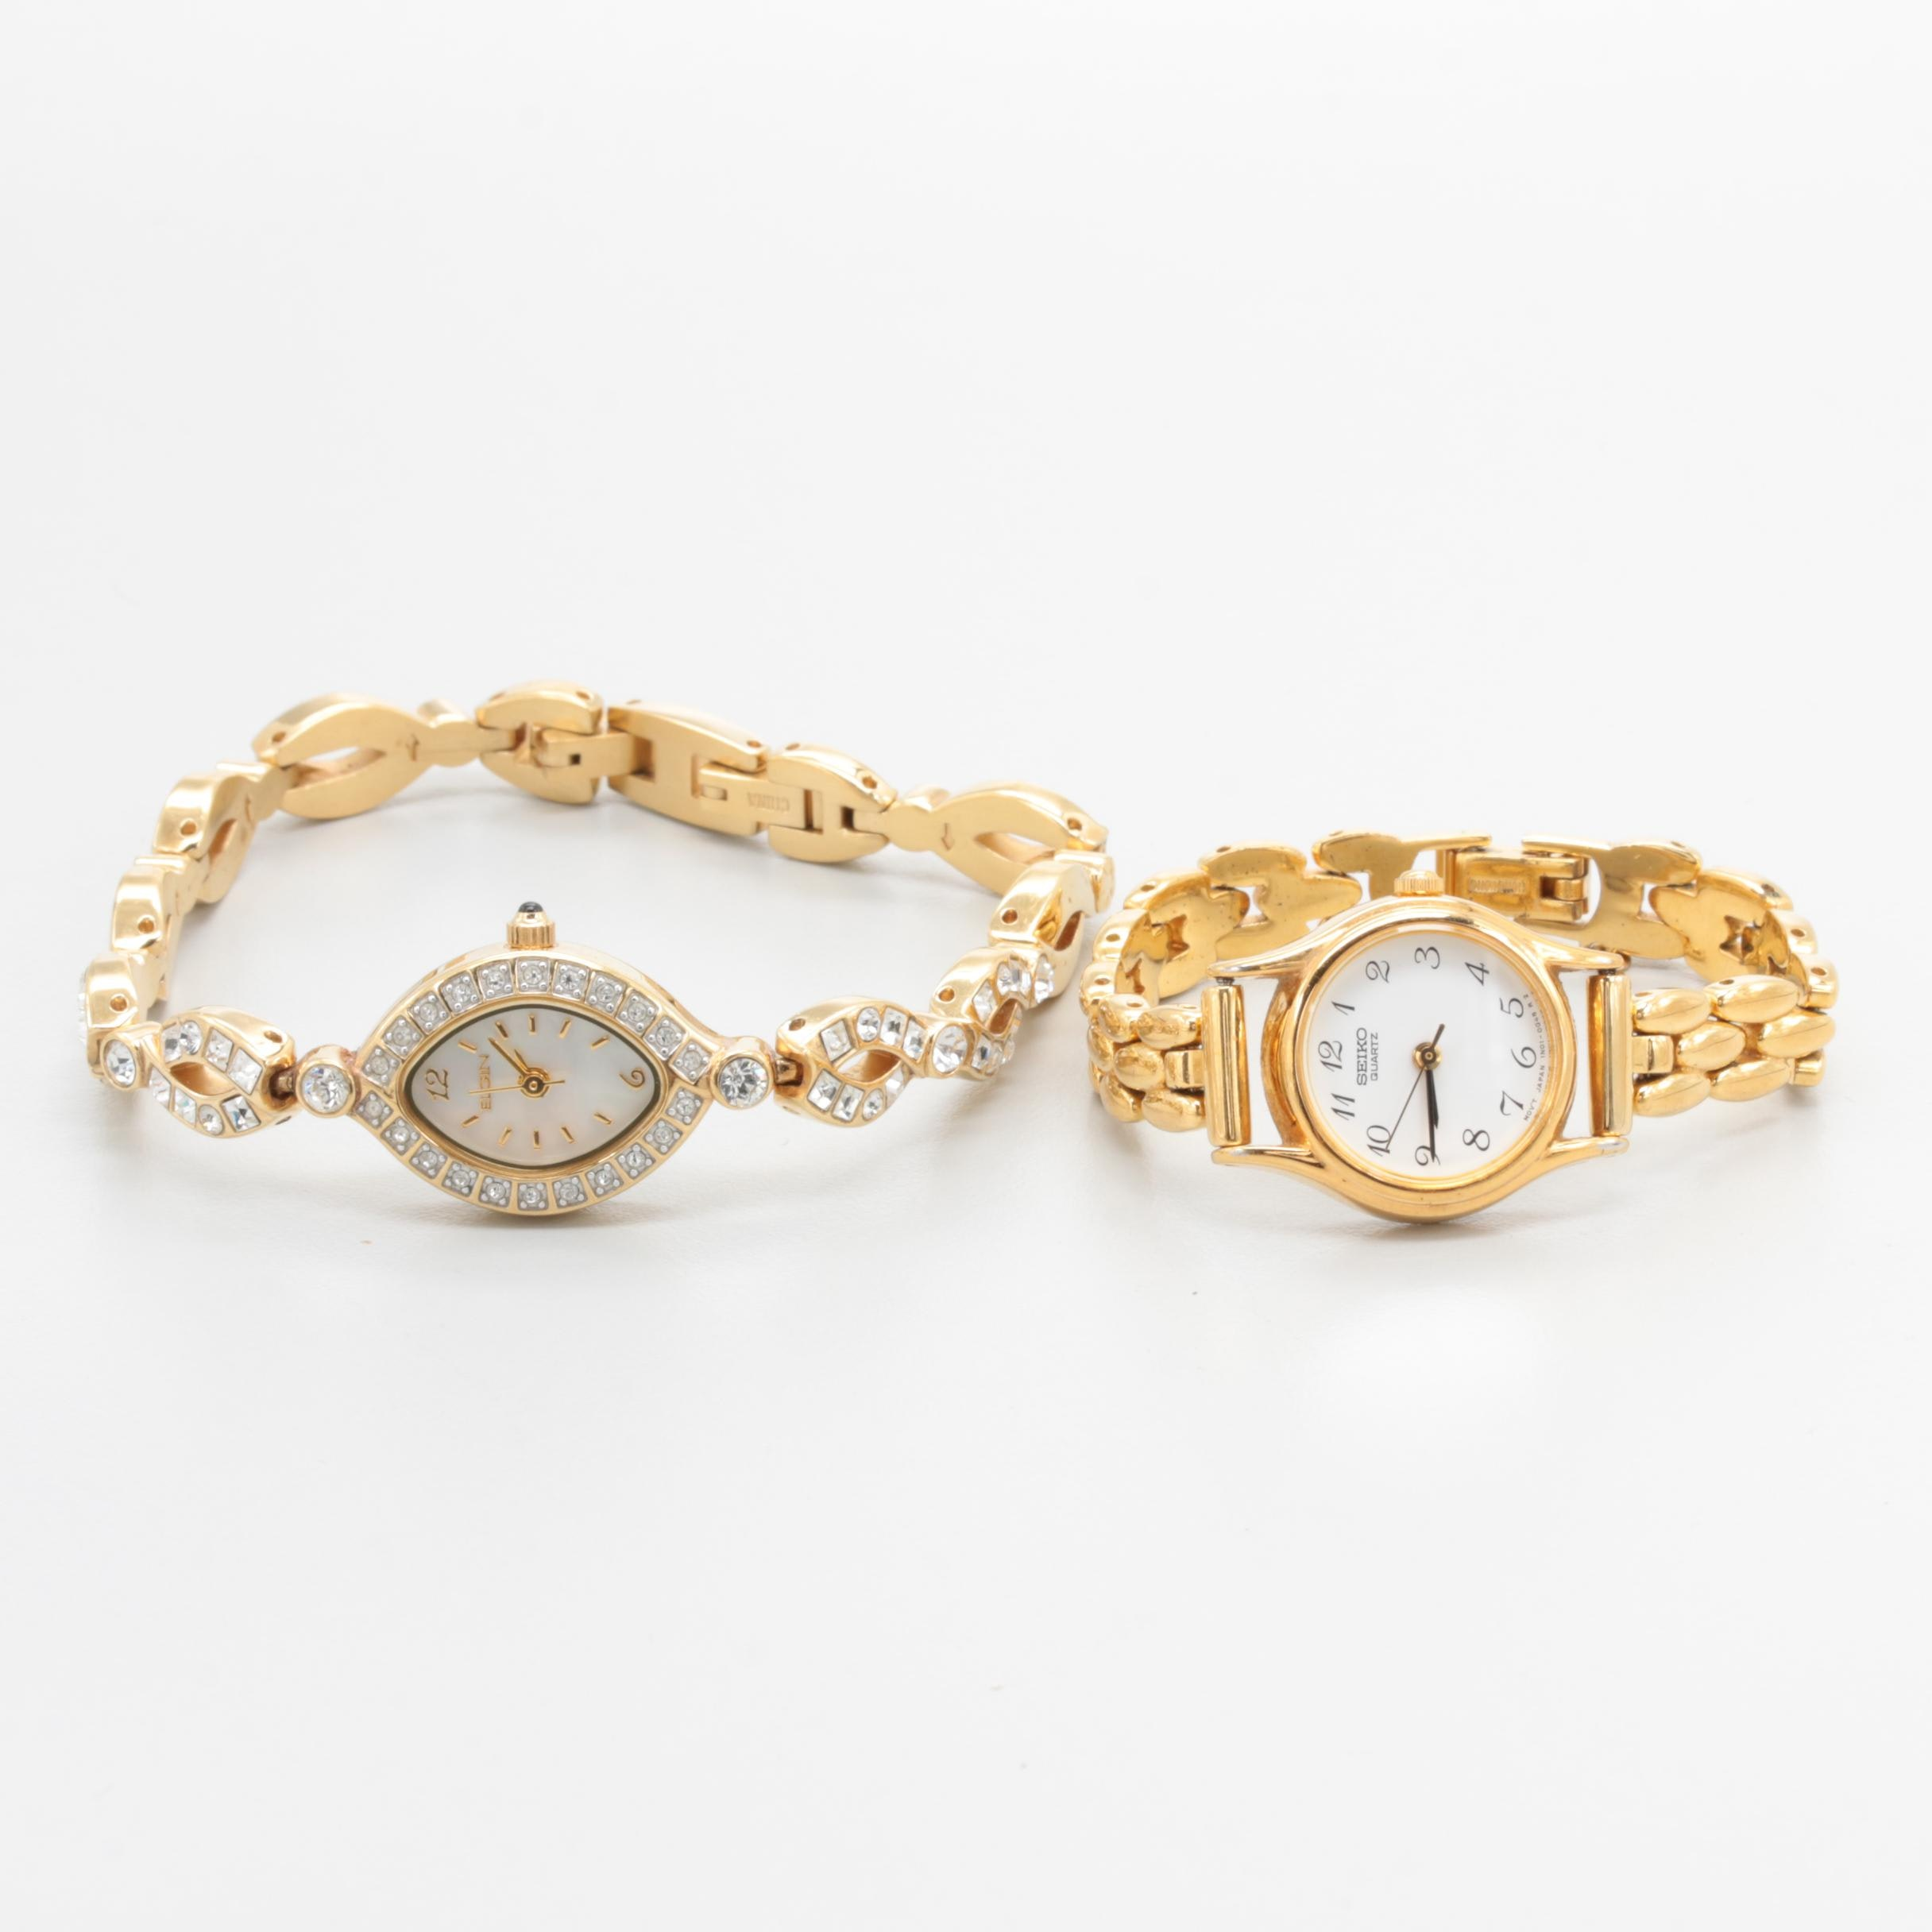 Gold Tone Stainless Steel Wristwatch Selection with Mother of Pearl and Glass